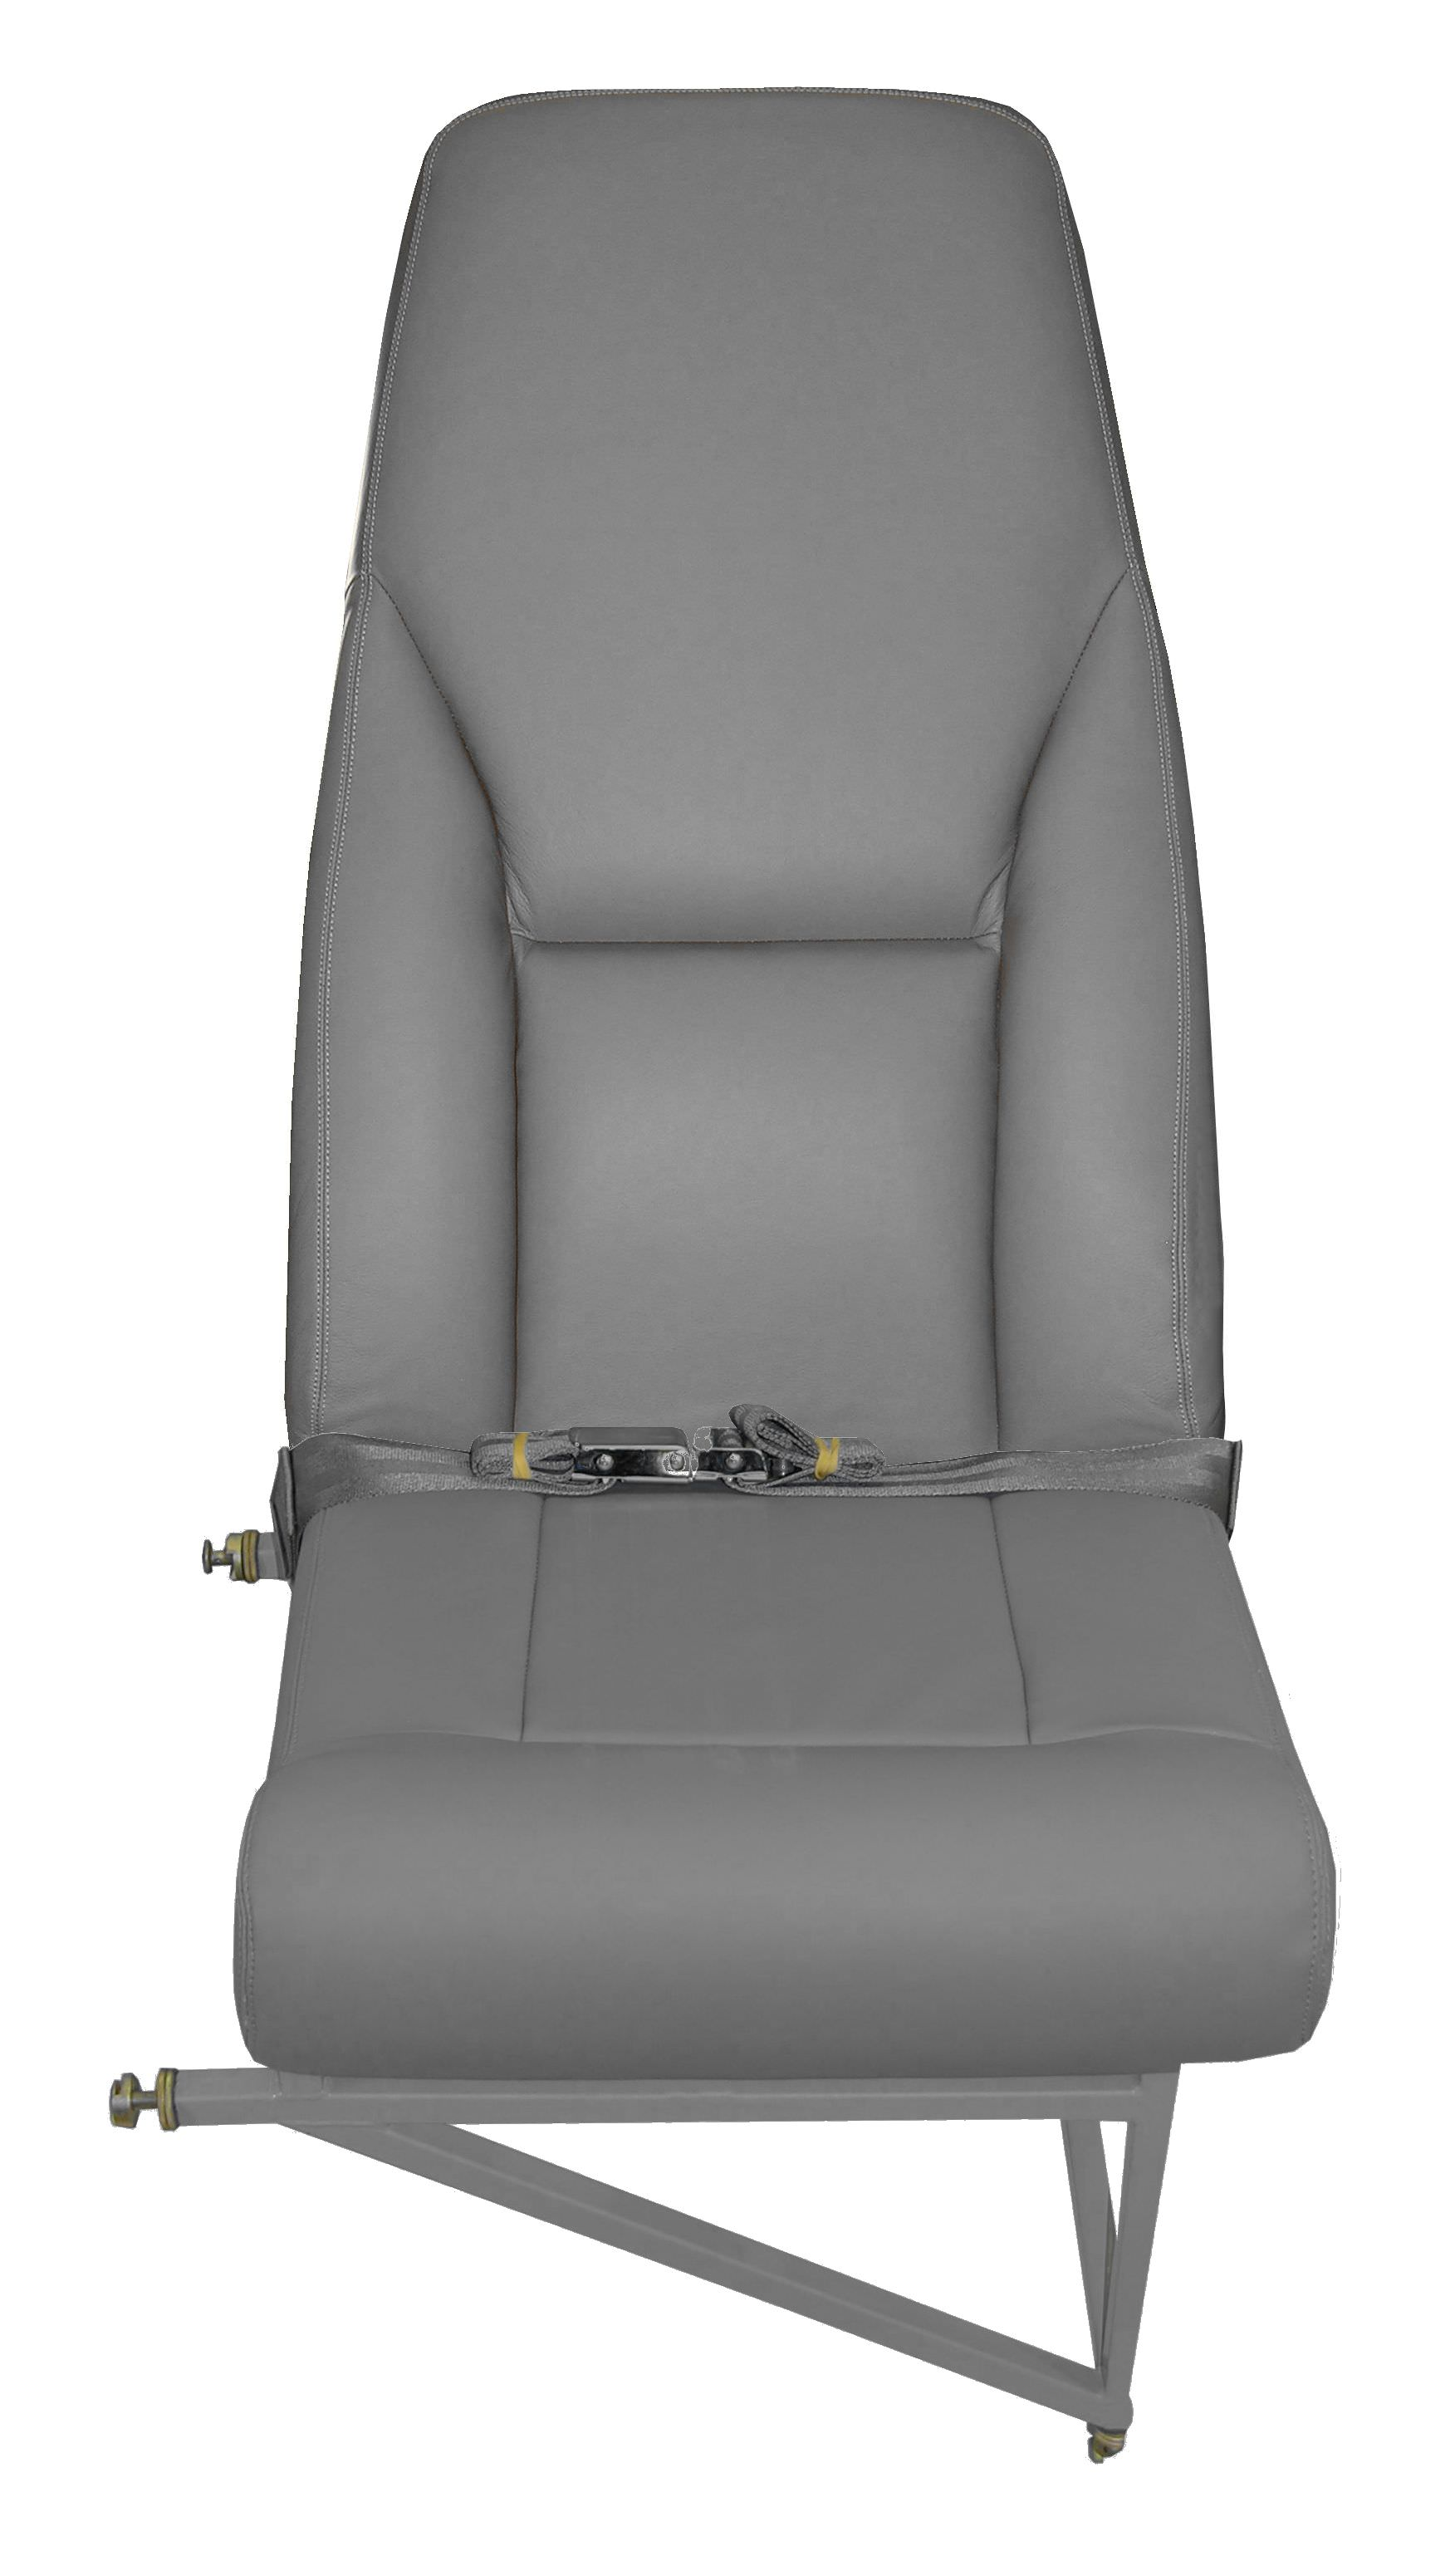 AvFab's Beechcraft 1900 series high density seat has been engineered for comfort, durability and affordability. It was designed to enhance the ease of occupants ingress and egress, by increasing leg, knee, foot room, and passenger comfort. It is best-suited for applications where maximum seating is desired. It is important to note that we have never had a request for a spare part or repair for any of our high density series of seats, so they are extremely robust. Seat includes lap belt, life vest pouch, and cushions (un-upholstered).